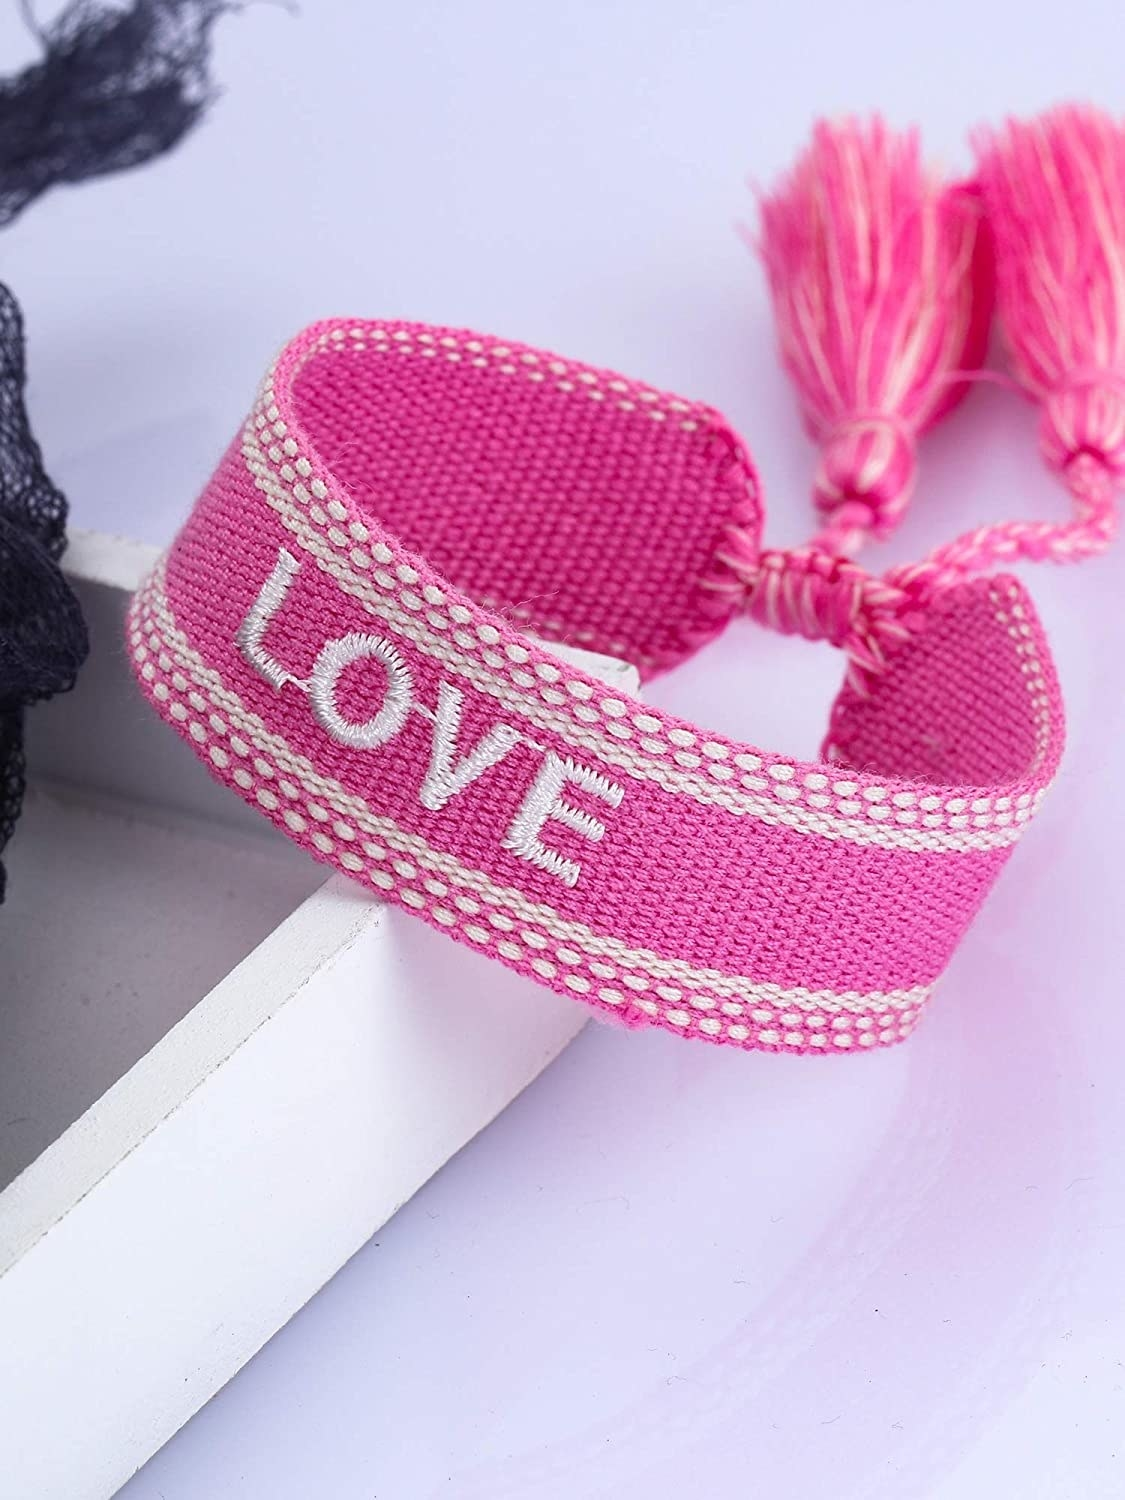 Pink and white woven bracelet with LOVE embroidery